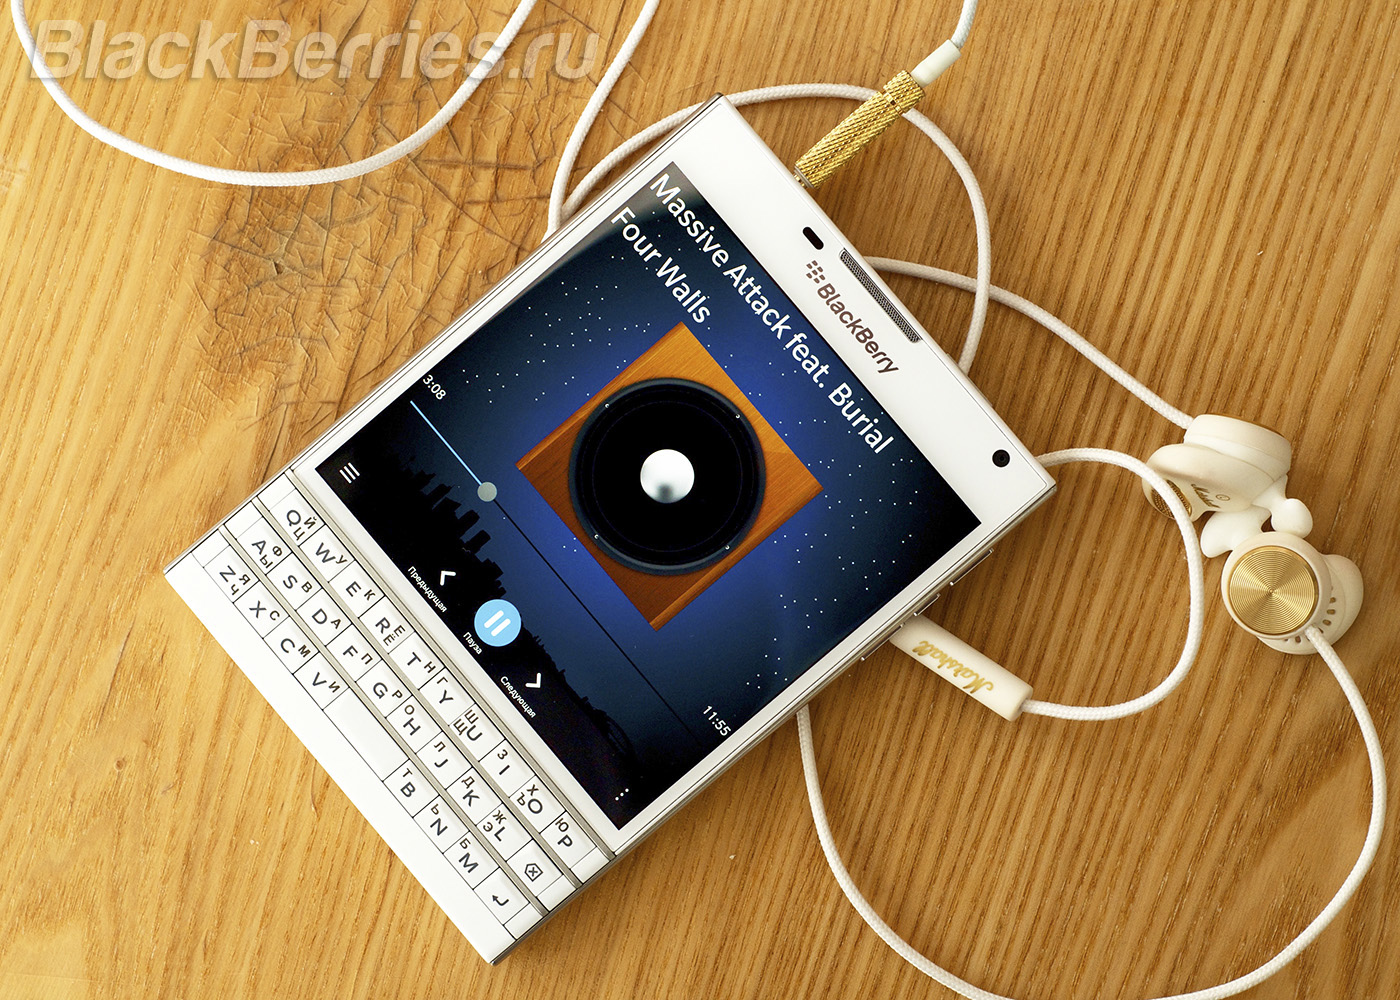 BlackBerry-Passport-Music-Apps-07